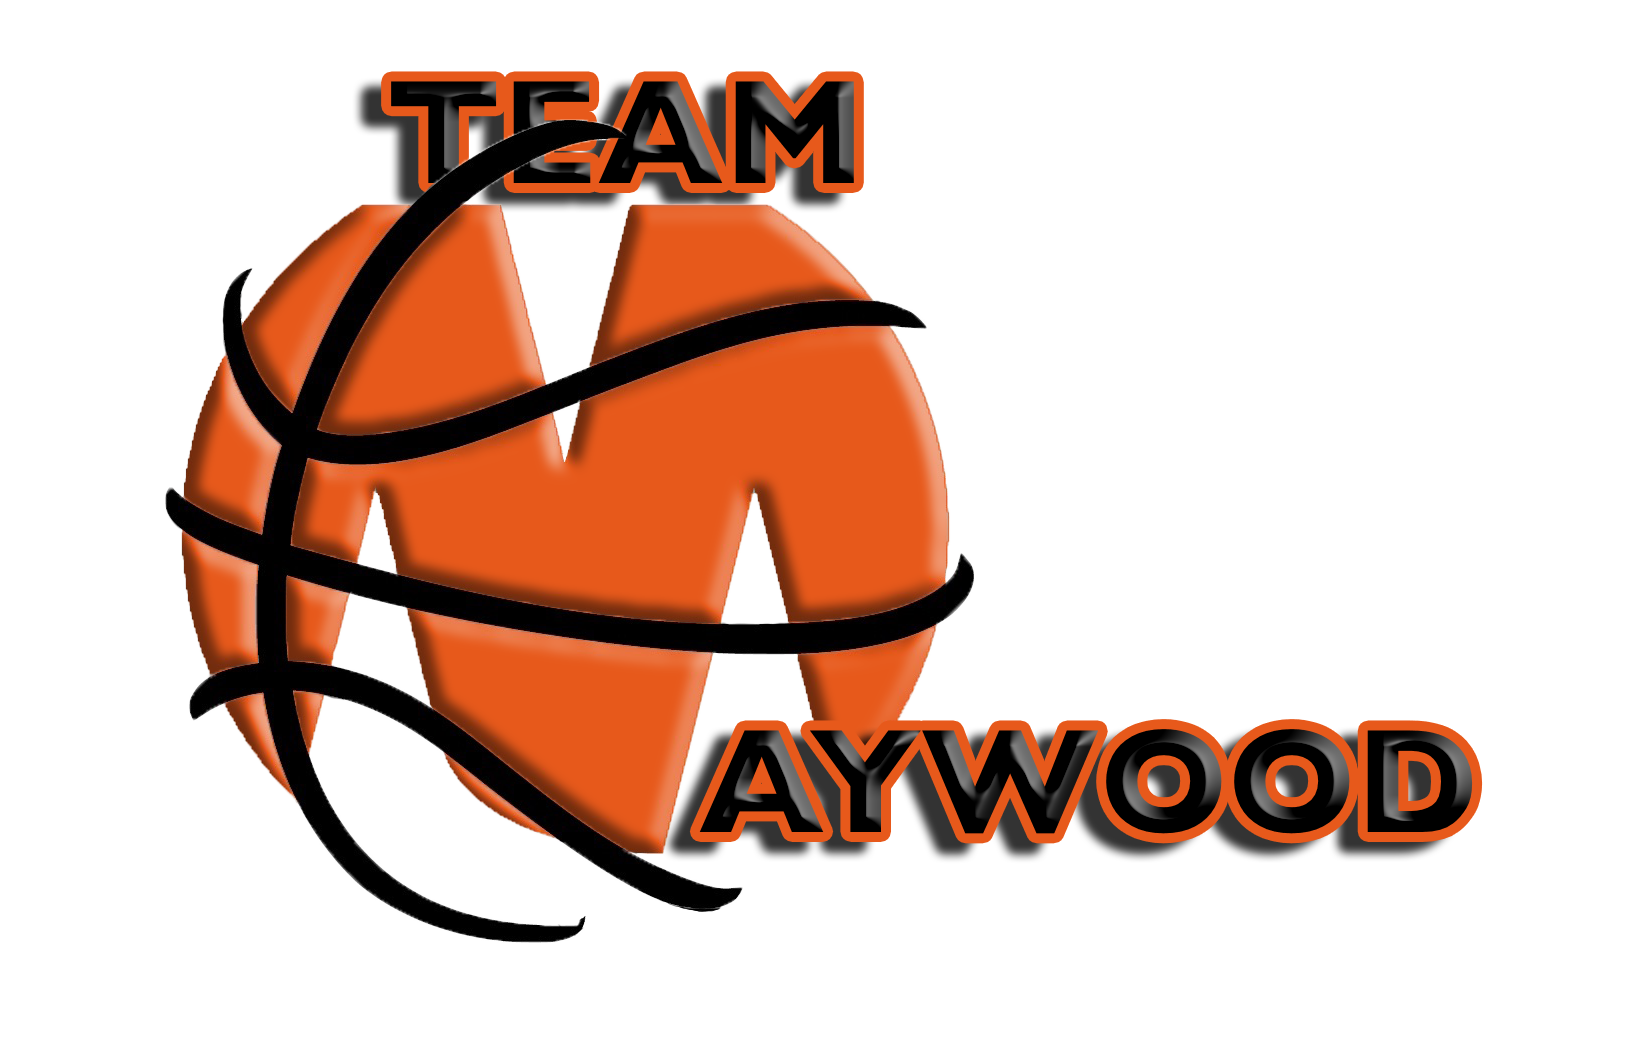 TEAM MAYWOOD